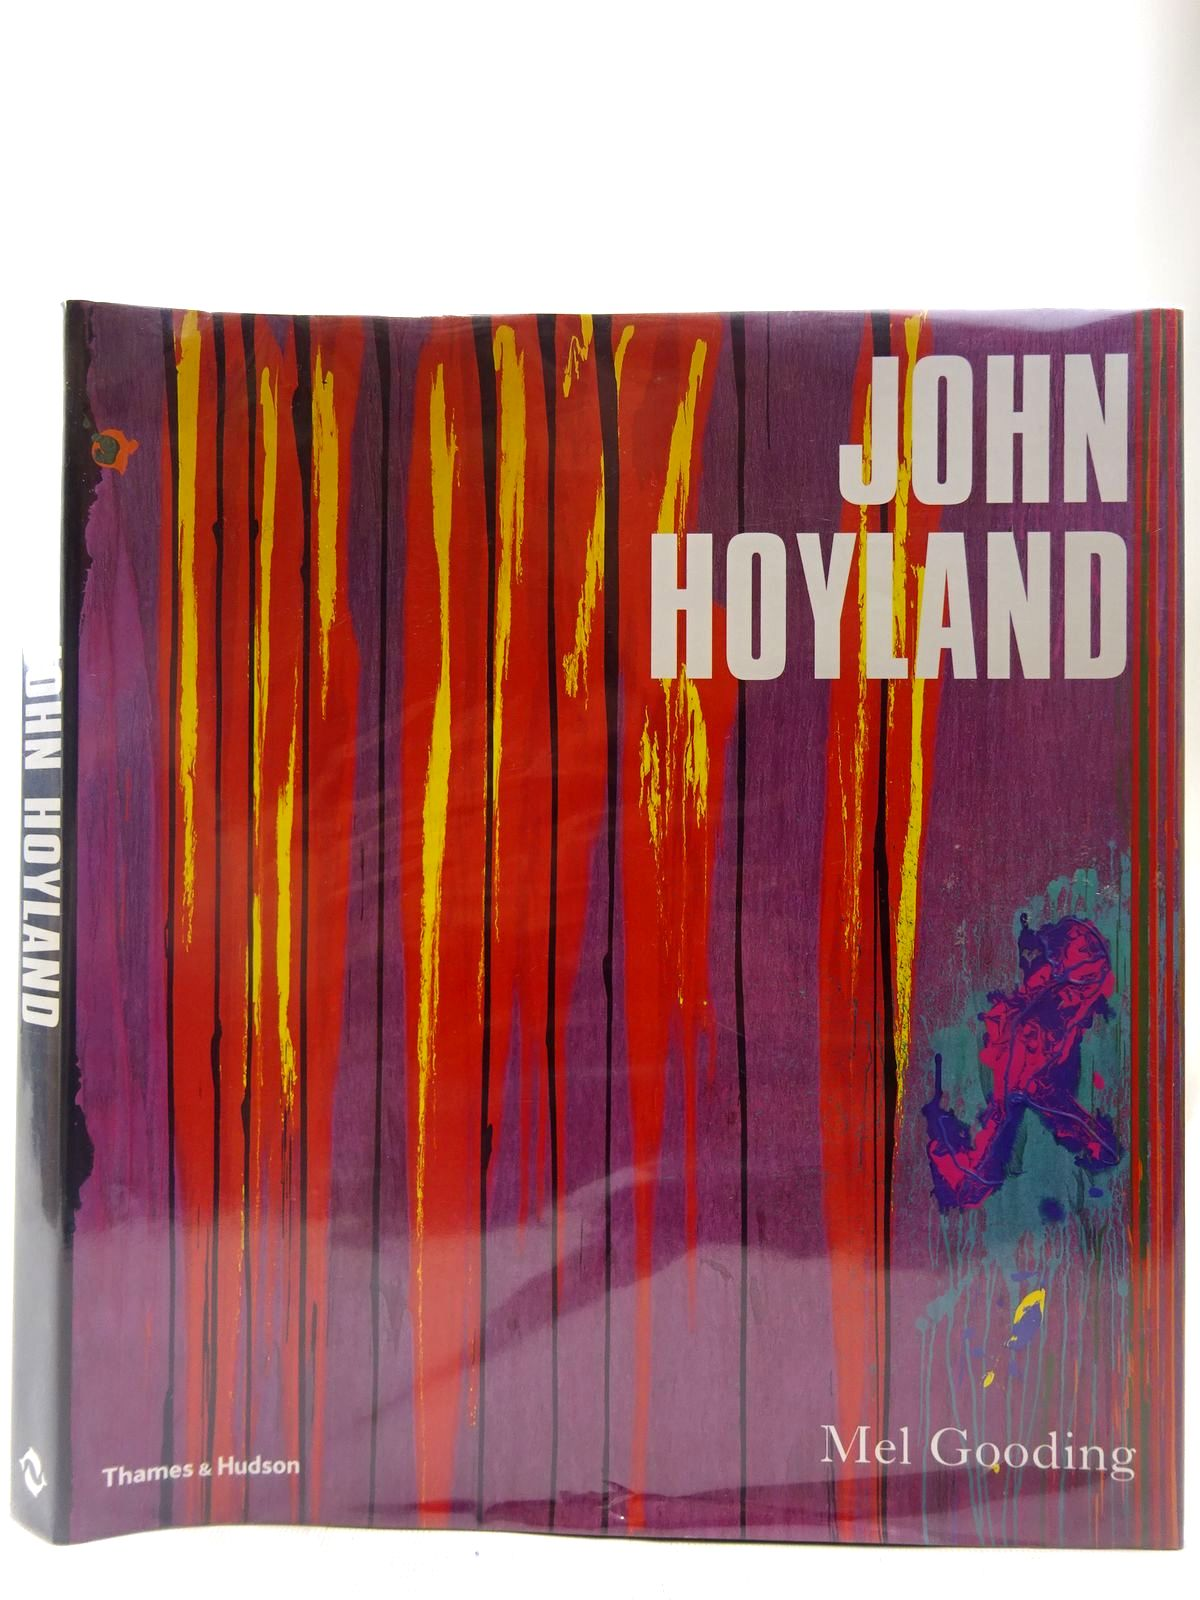 Photo of JOHN HOYLAND written by Gooding, Mel illustrated by Hoyland, John published by Thames and Hudson (STOCK CODE: 2127435)  for sale by Stella & Rose's Books